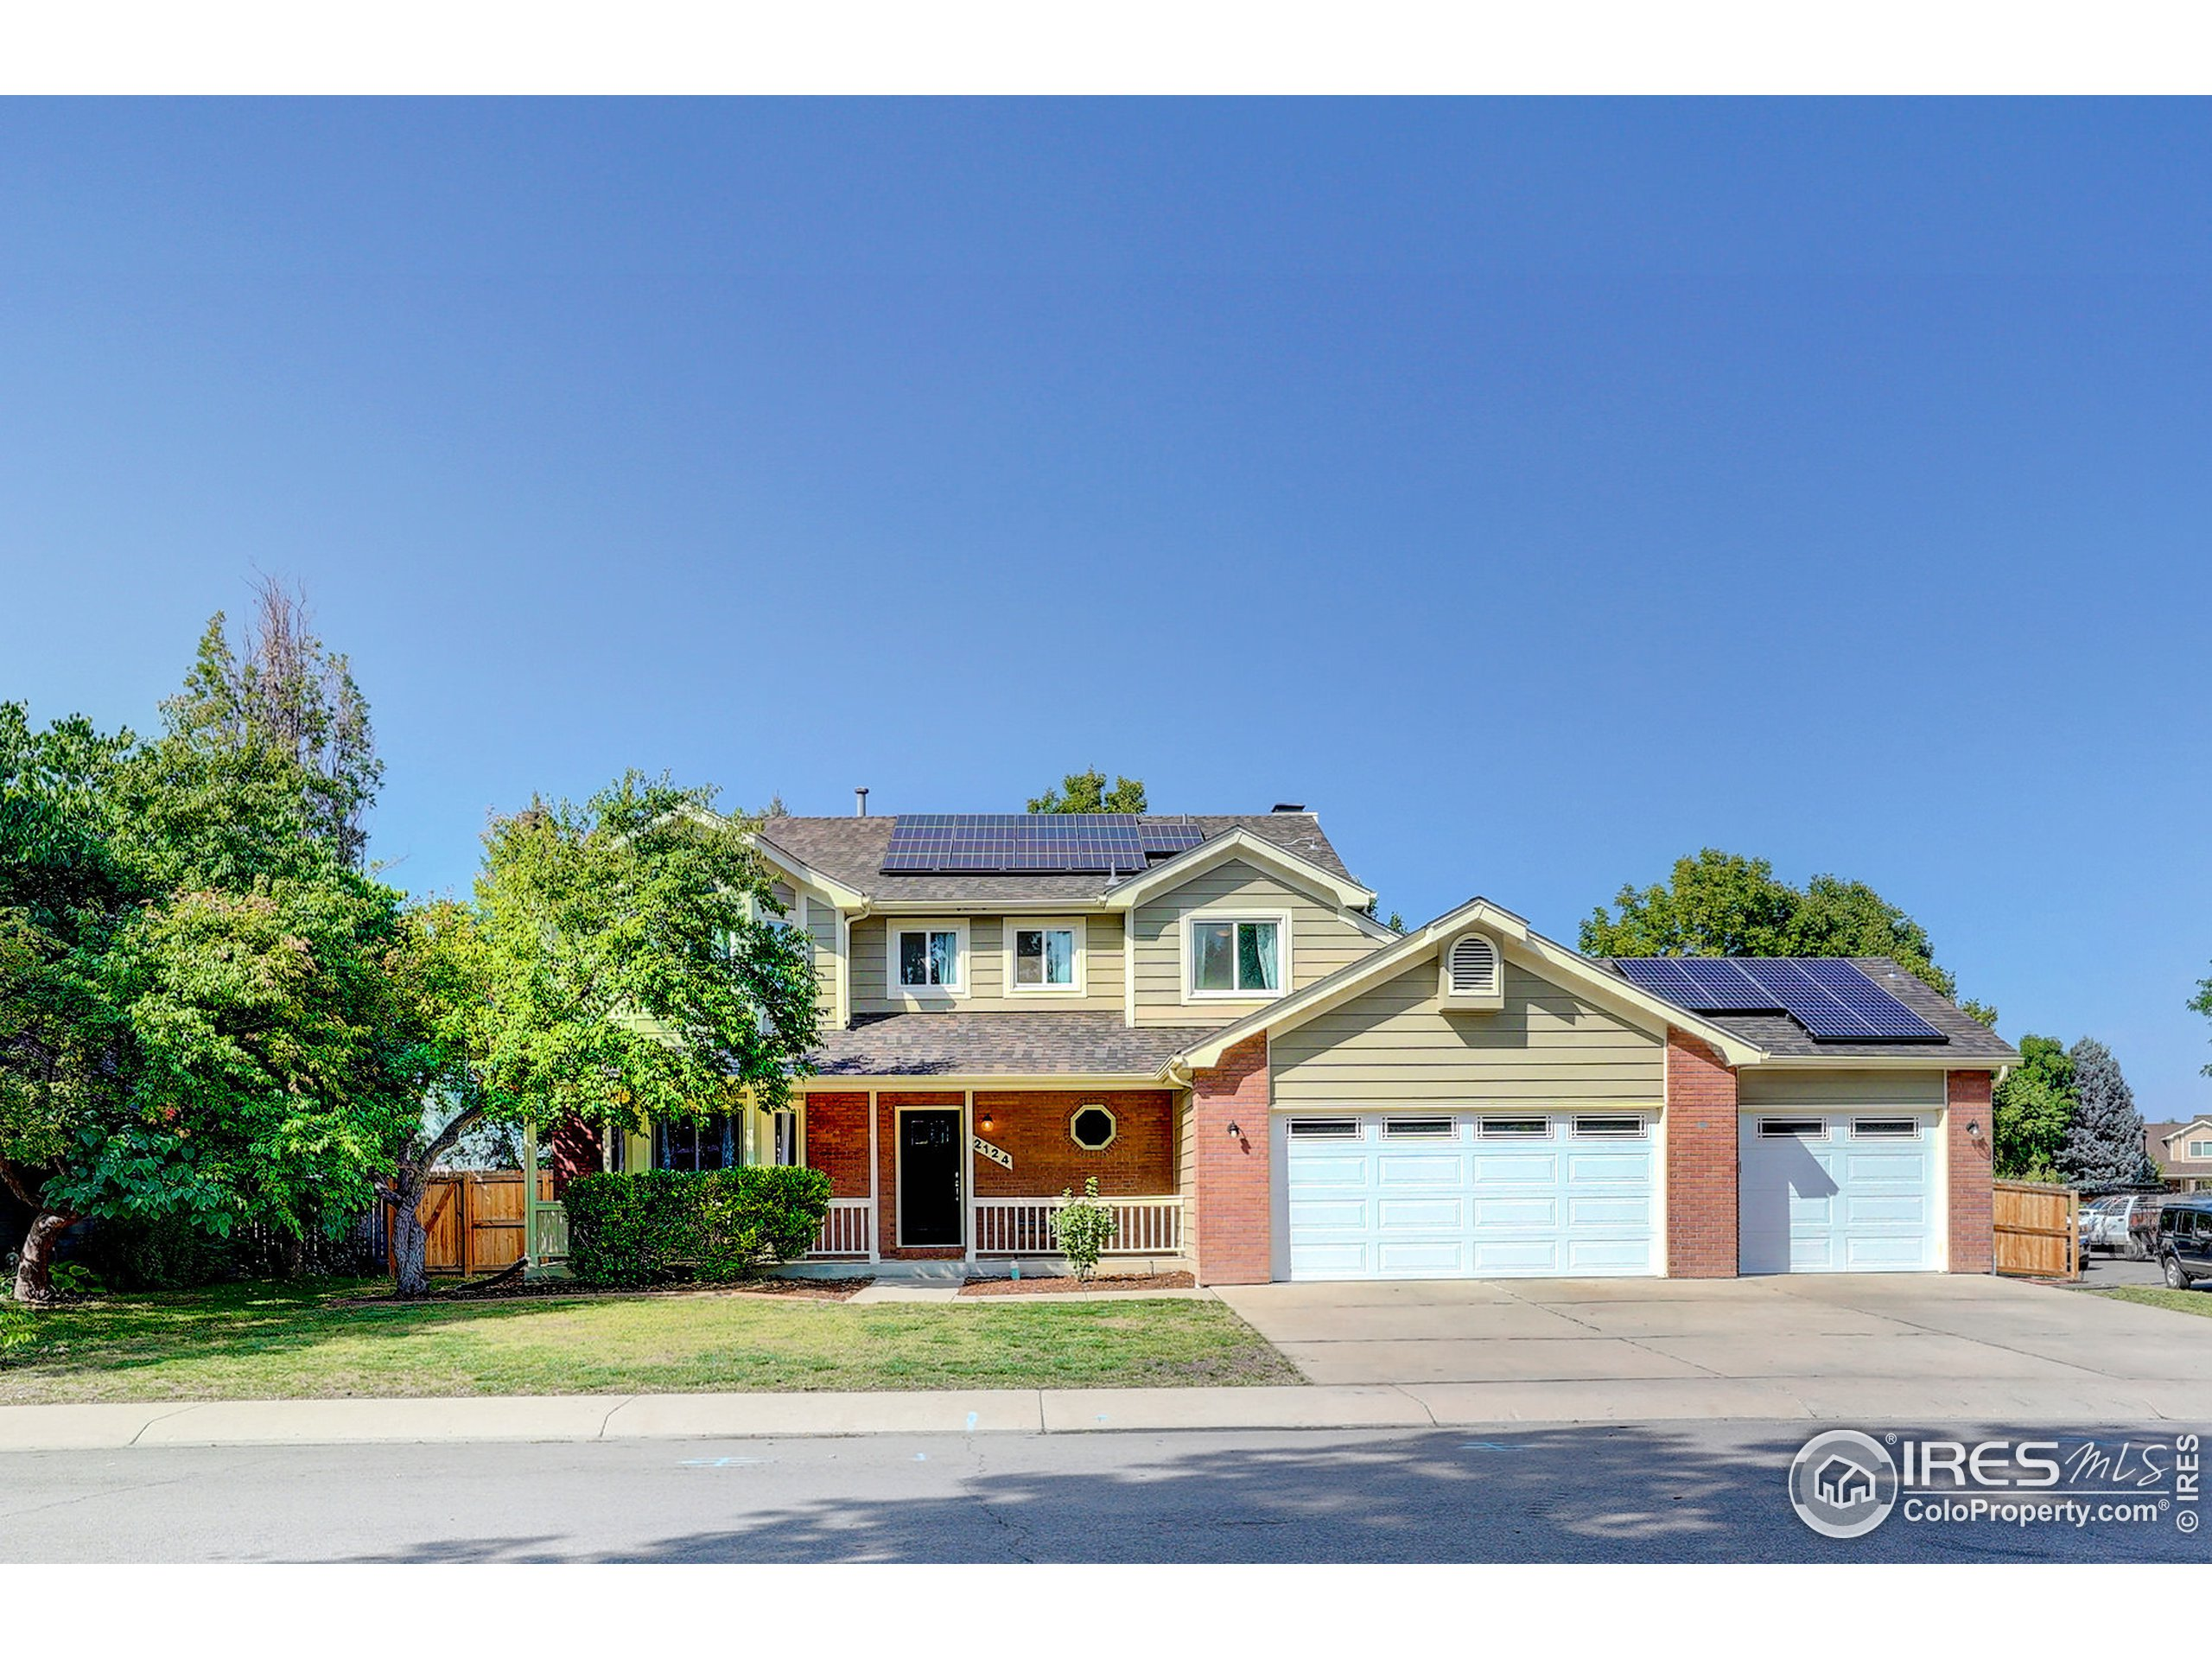 2124 Stoney Pine Ct, Fort Collins, CO 80525